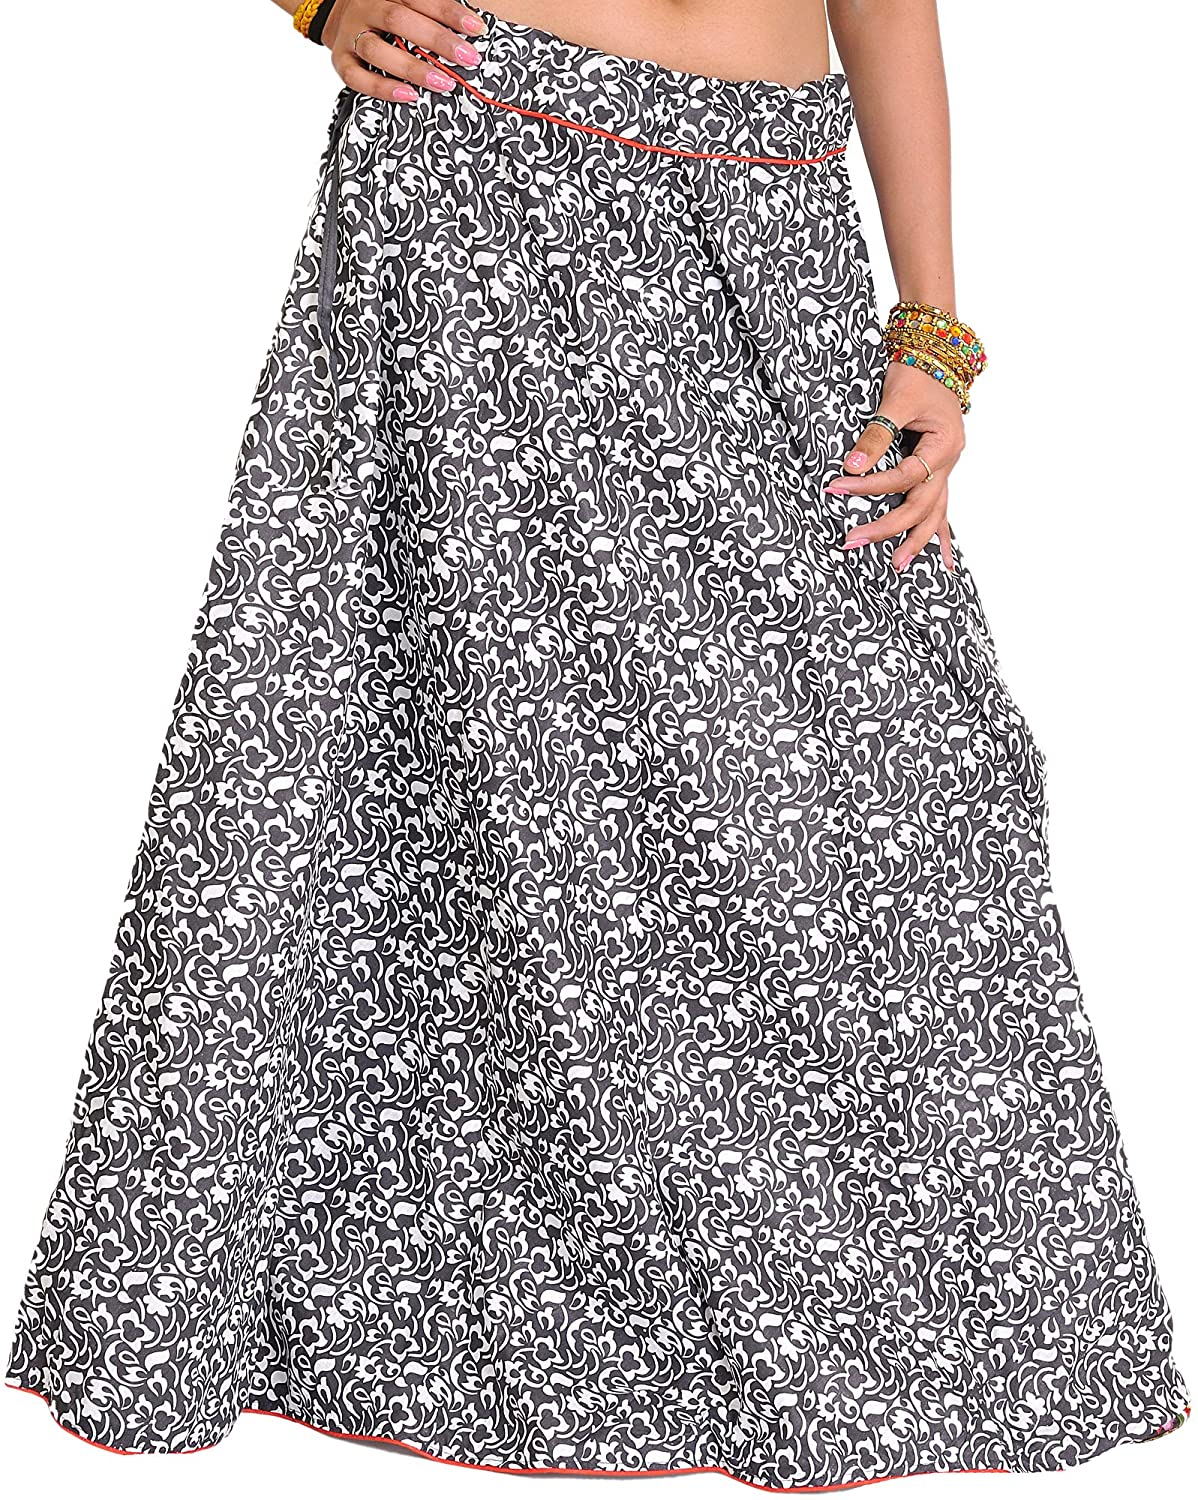 Exotic India Floral Printed Ghagra Skirt from Pilkhuwa